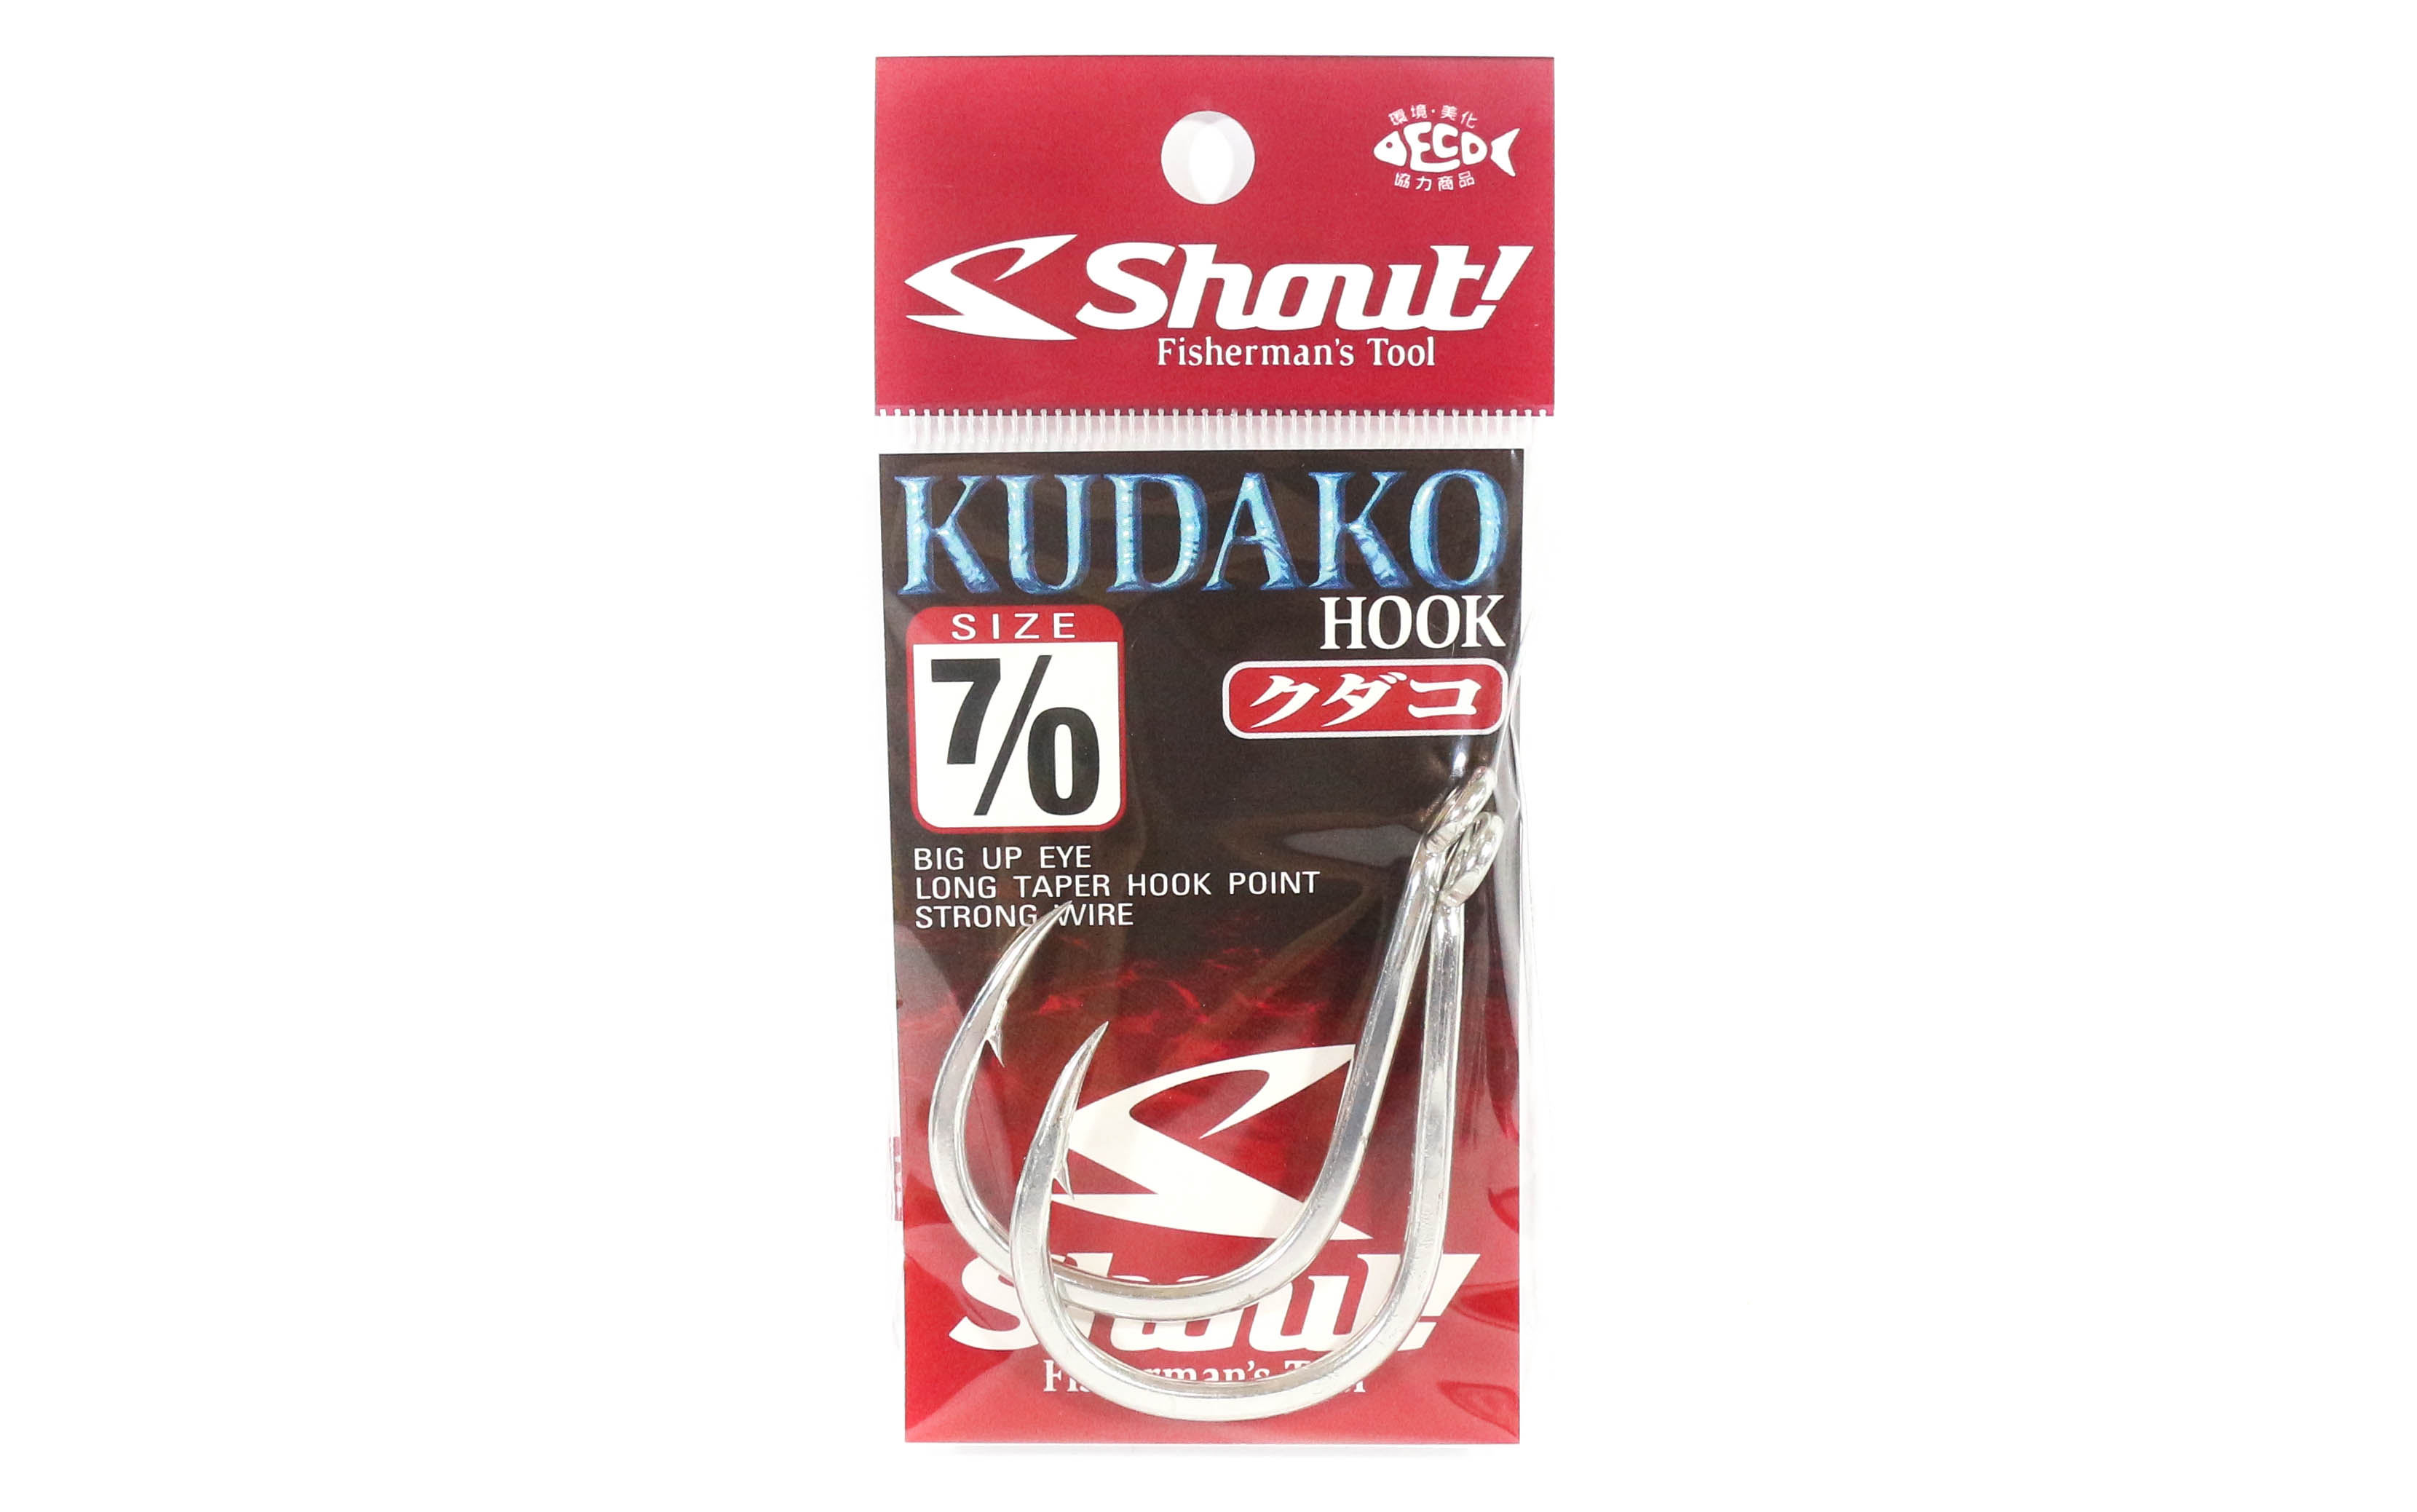 Shout 04-KH Kudako Power Jigging Single Hook Silver Size 7/0 (7703)